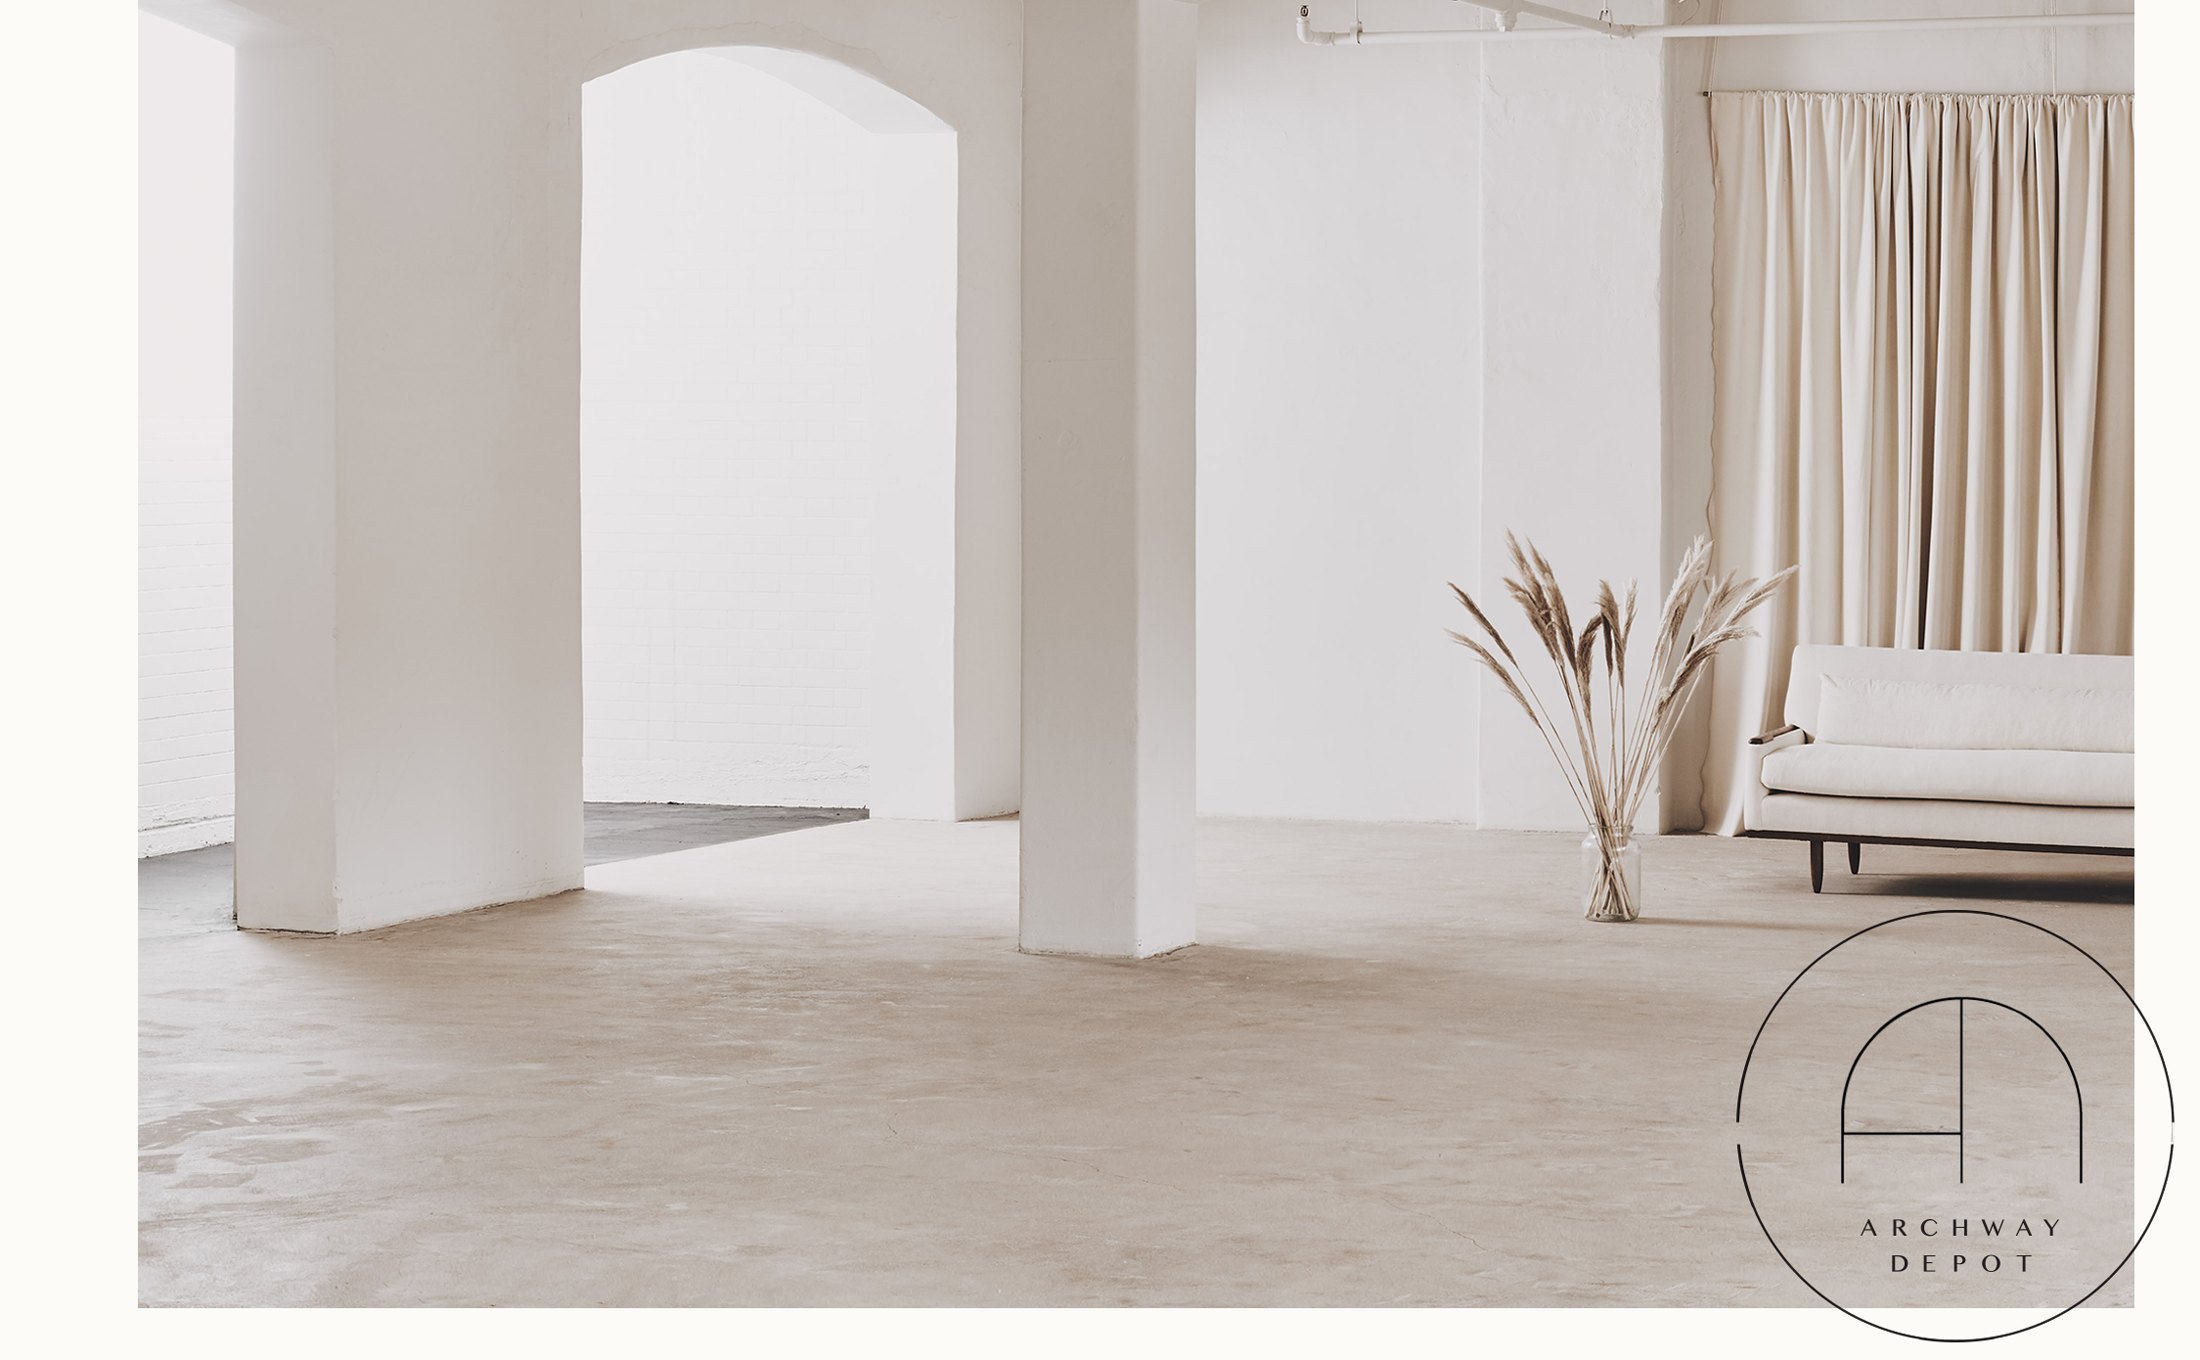 Positive Space. - two brand-new studios with great light and scale, in the heart of london.